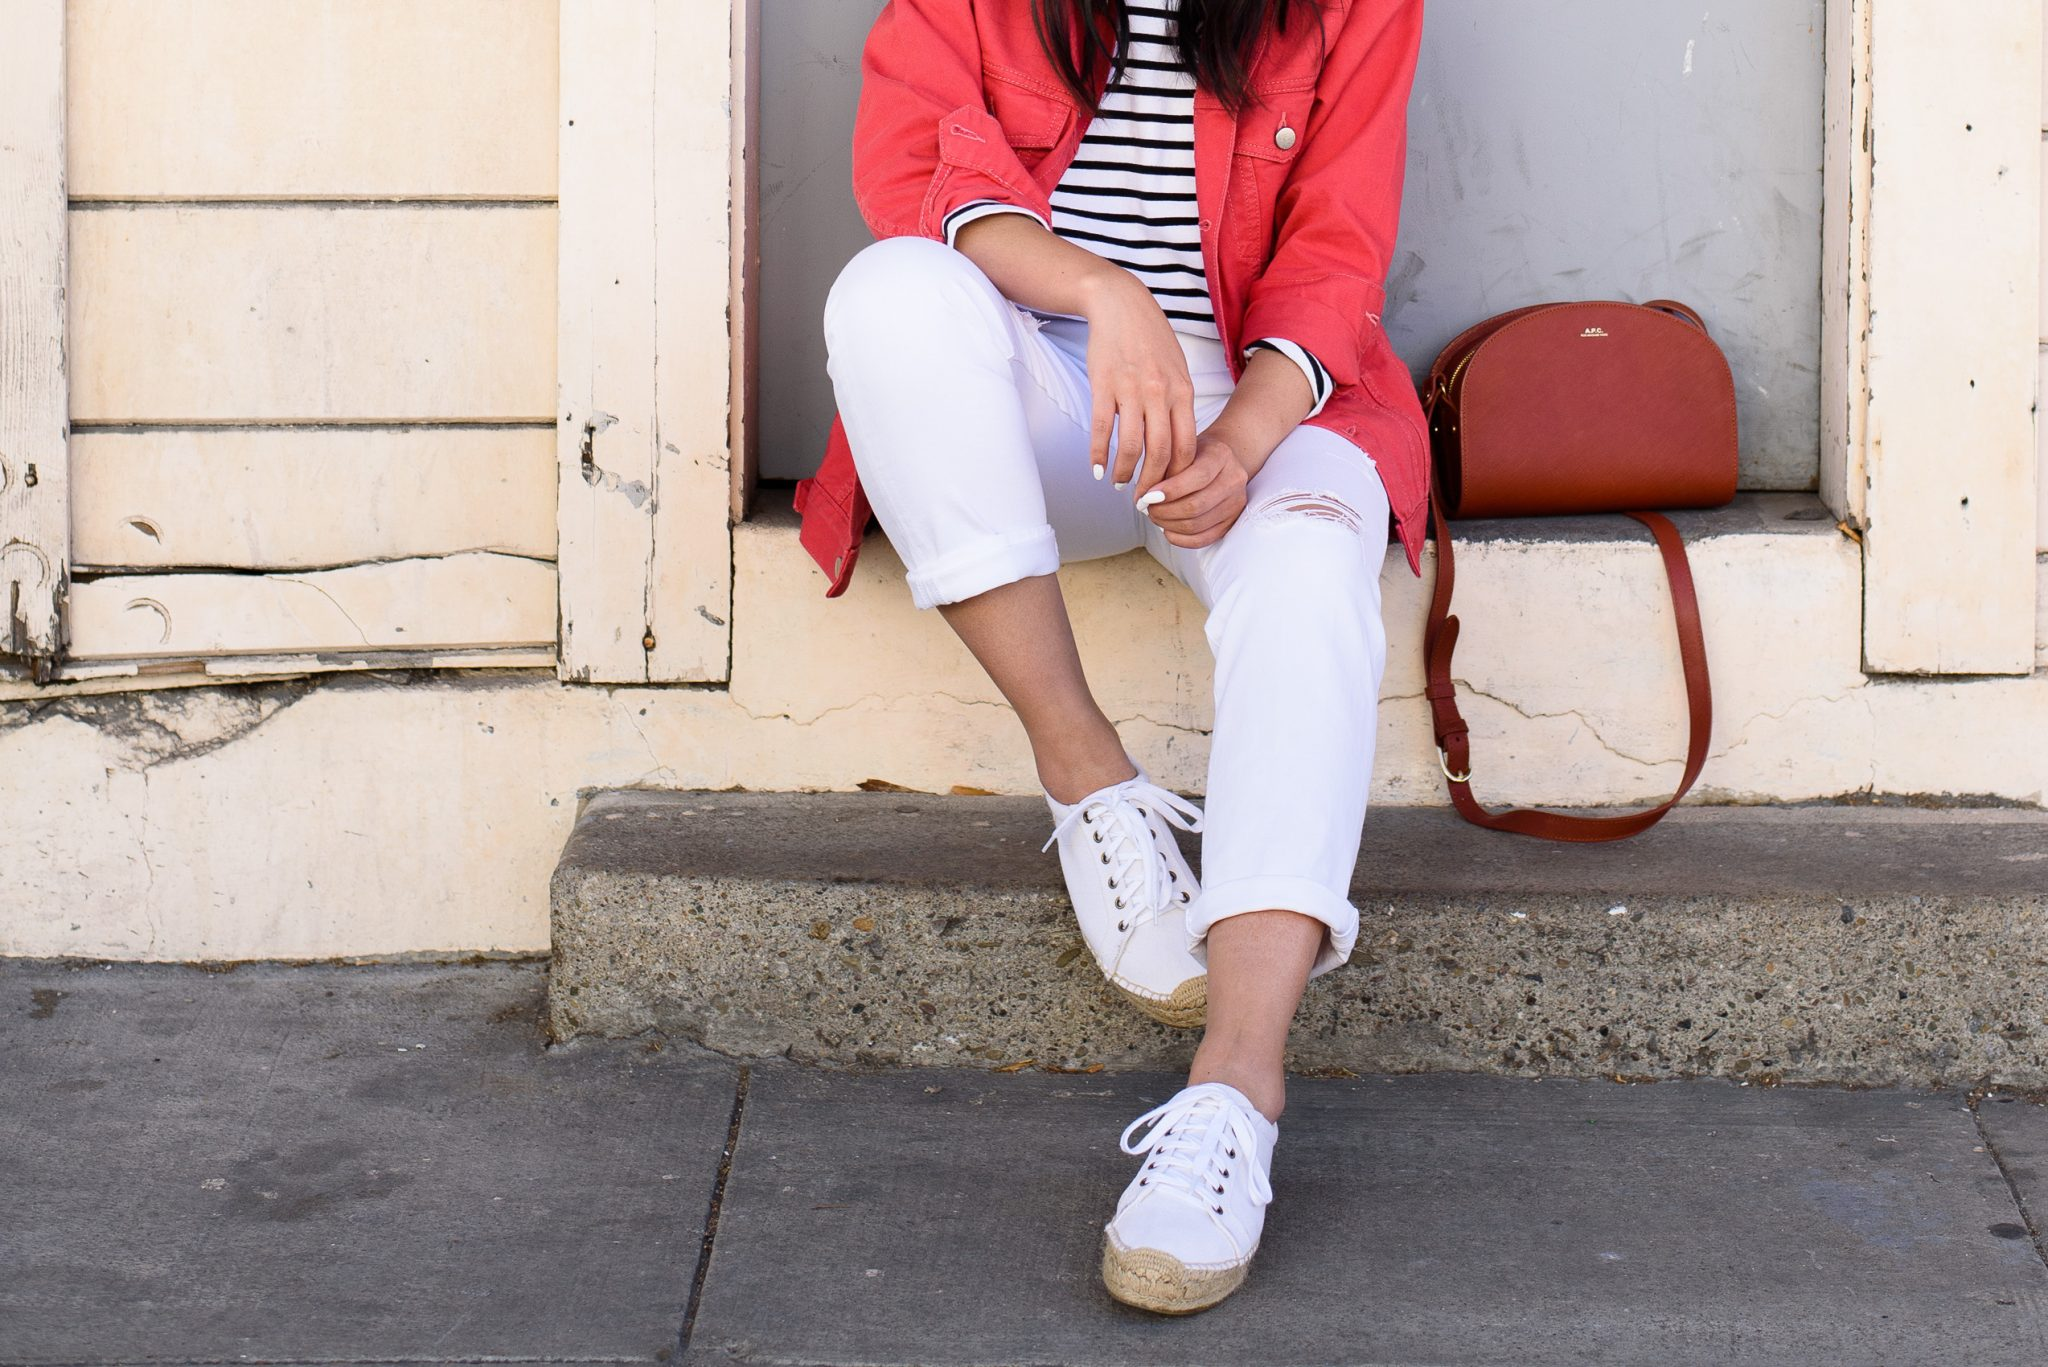 #OOTD: Summer In San Francisco